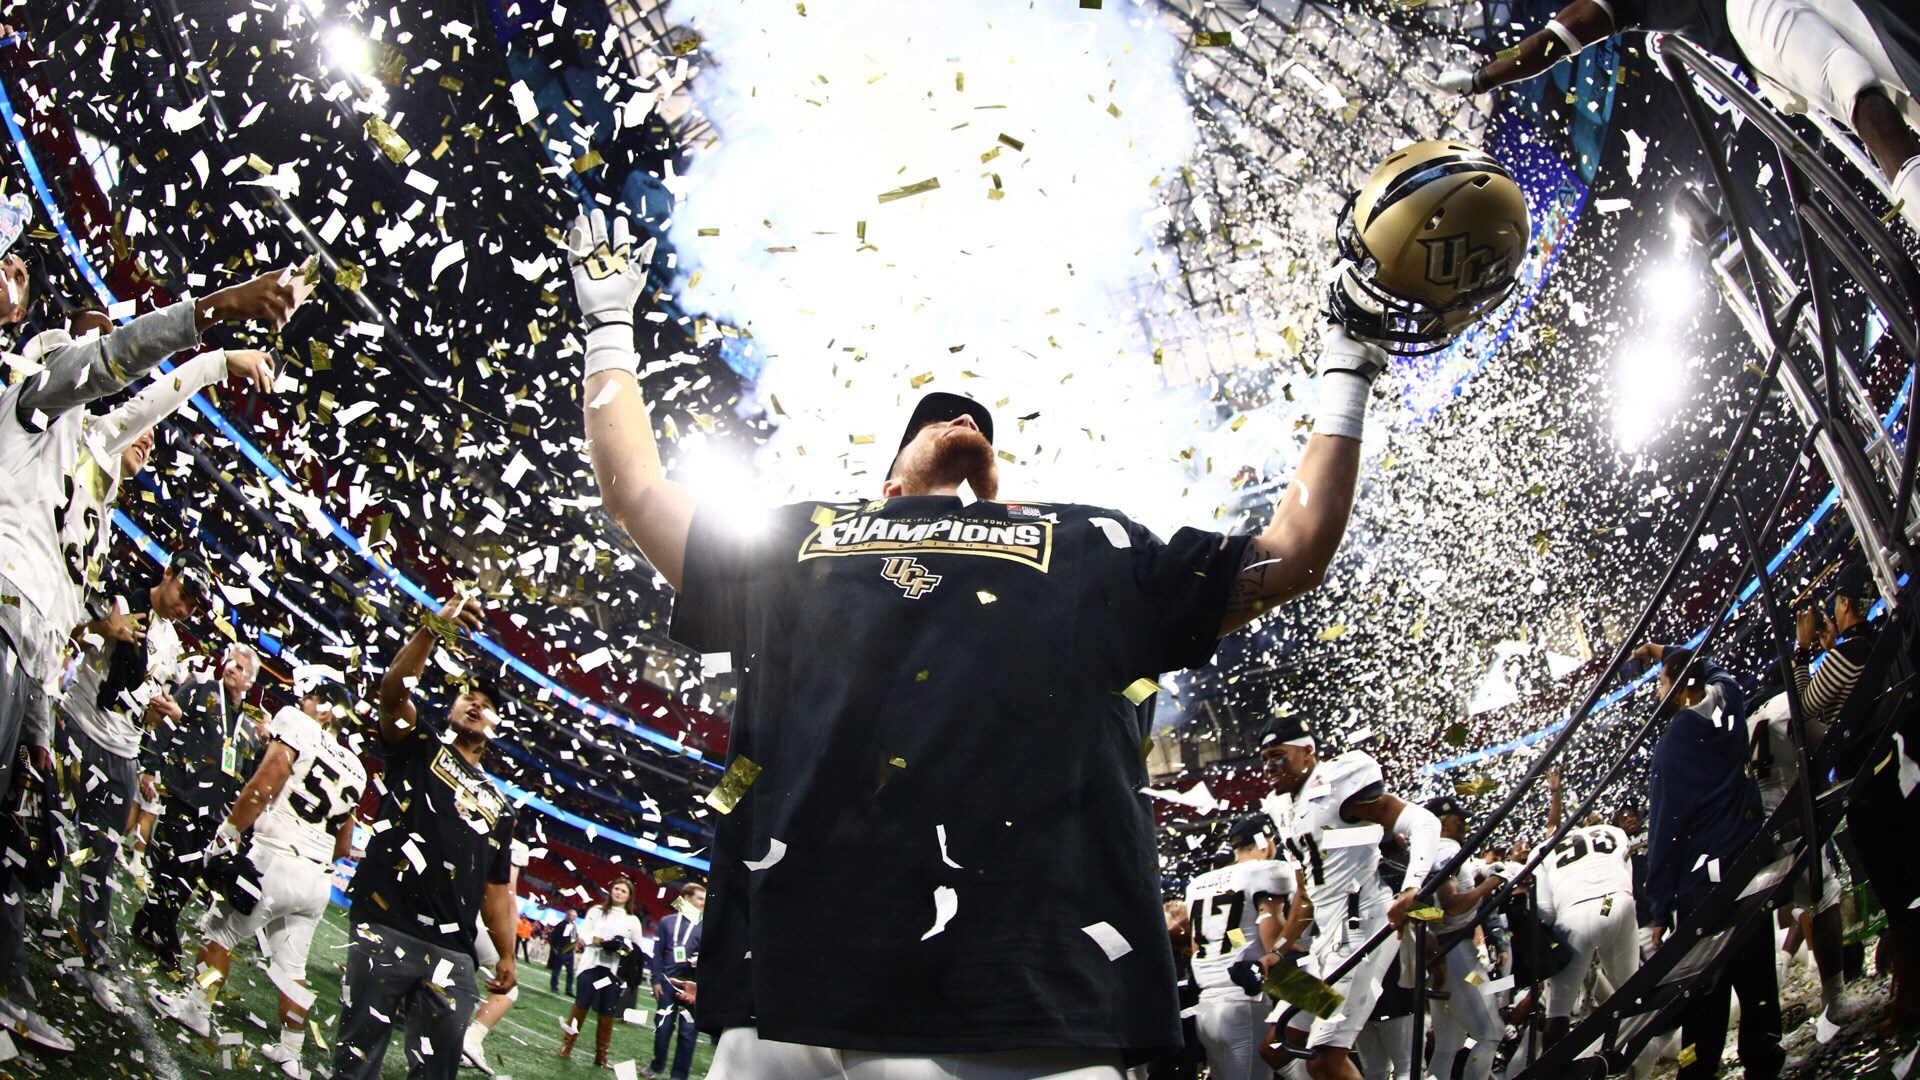 """White and gold confetti showers a player wearing a black """"Champions"""" shirt as he holds his gold helmet and looks out at the crowd."""